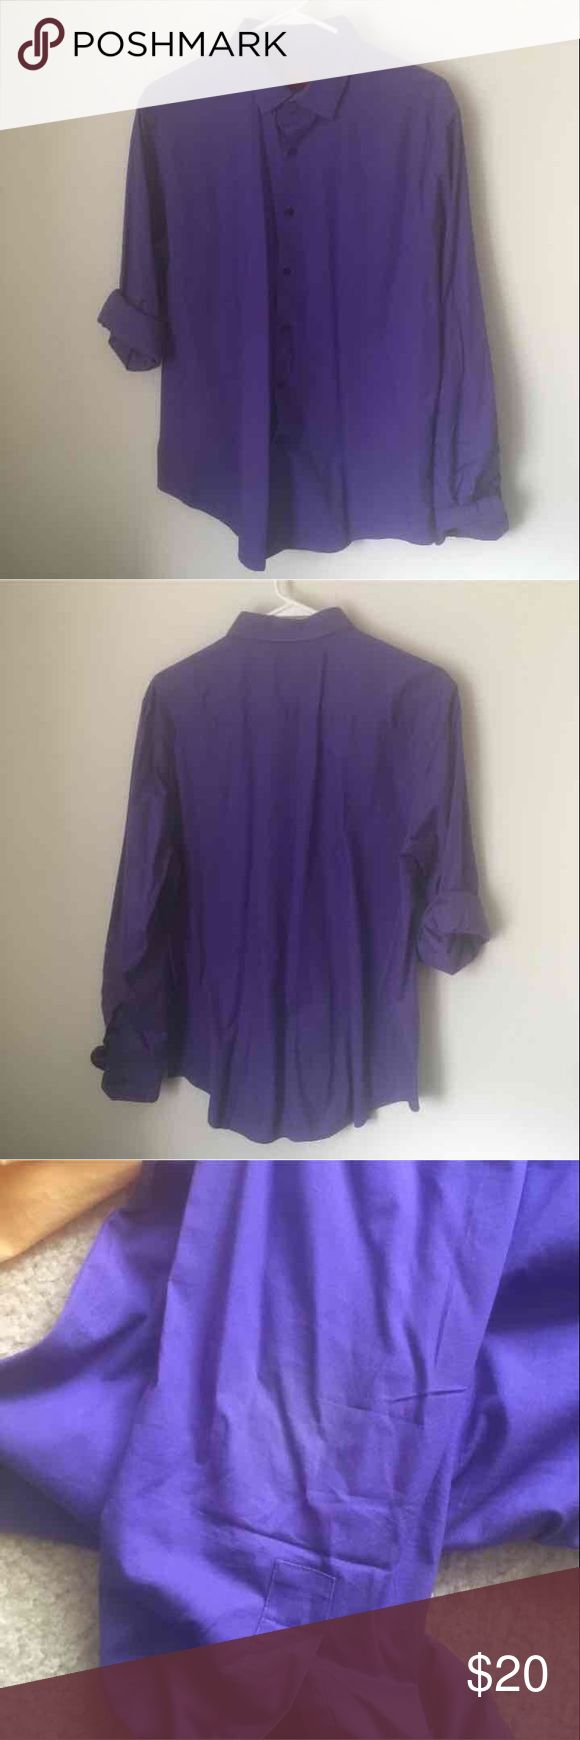 Purple dress shirt In good used condition  Beautiful purple color  Slight fading on the elbows as shown; can be covered up by rolling sleeves (that's how these shirts were always worn)  16-16.5 34-35 Alfani slim fit Alfani Shirts Dress Shirts